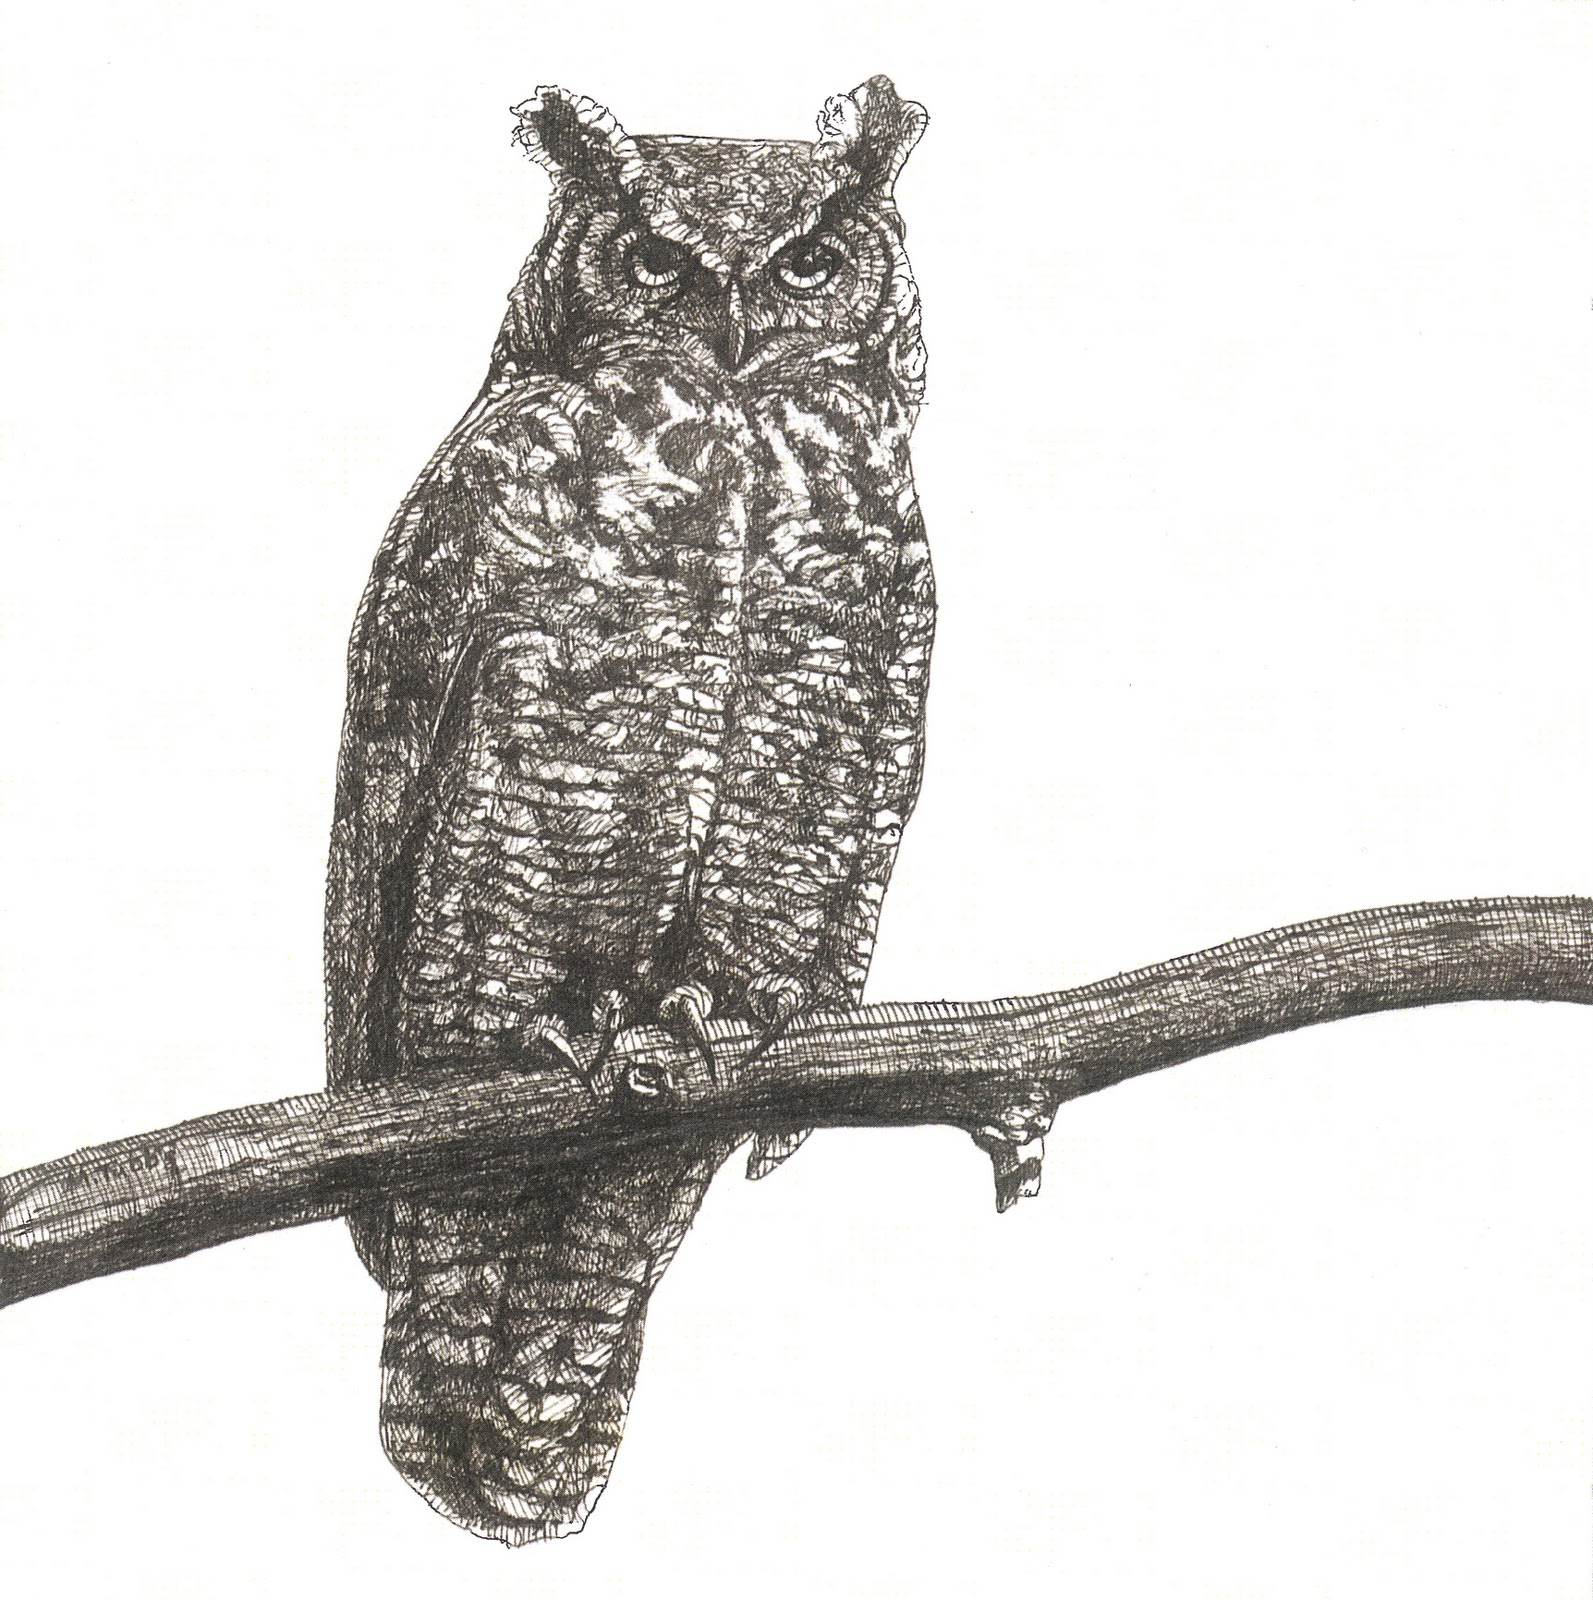 melissa b tubbs ink architecture great horned owl